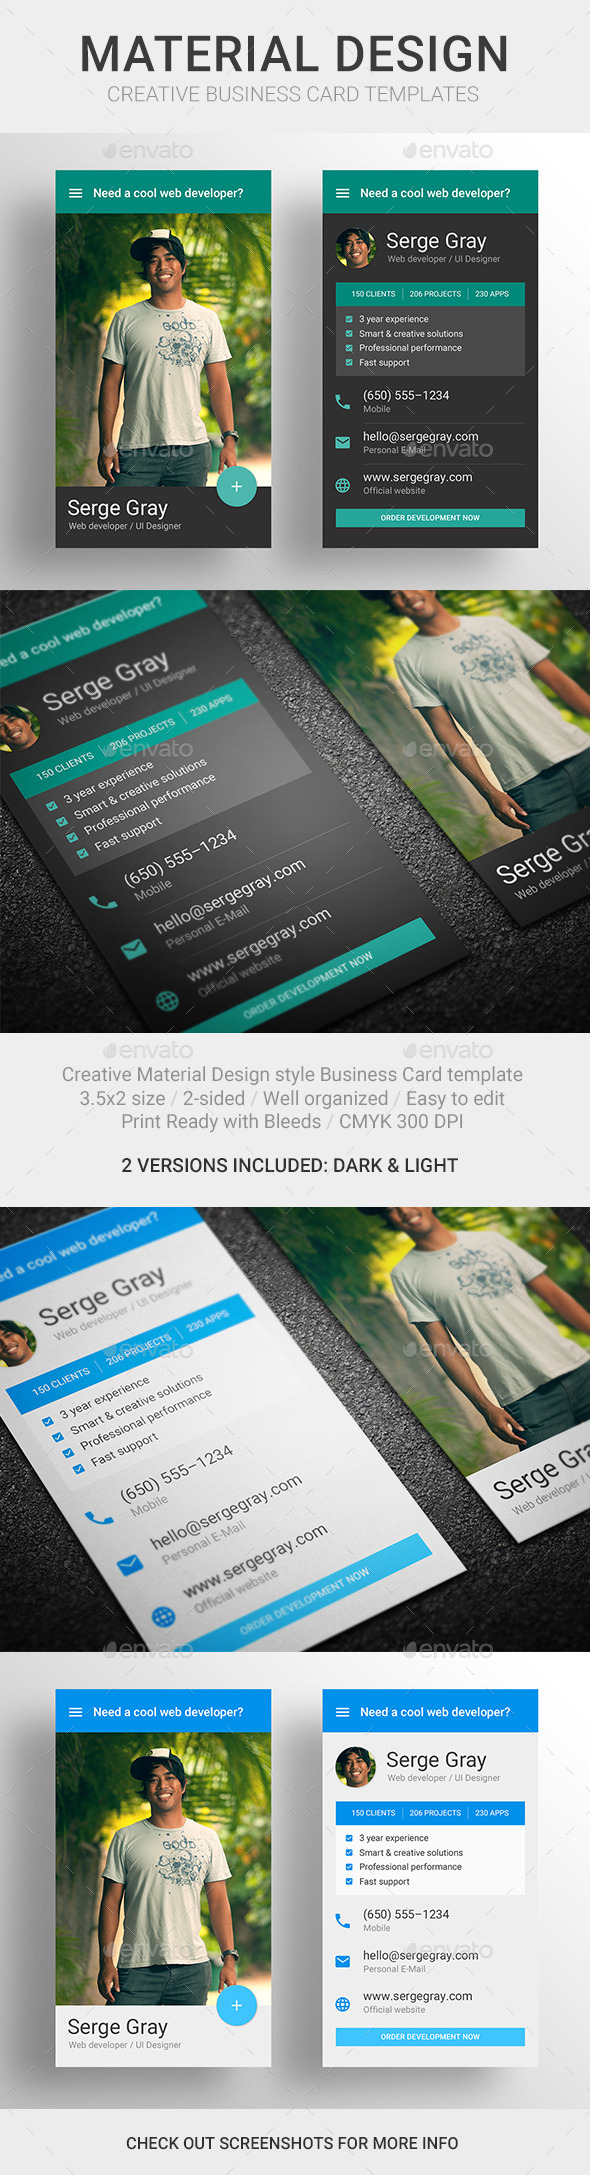 GraphicRiver MaDe Material Design Business Card Template 10449582